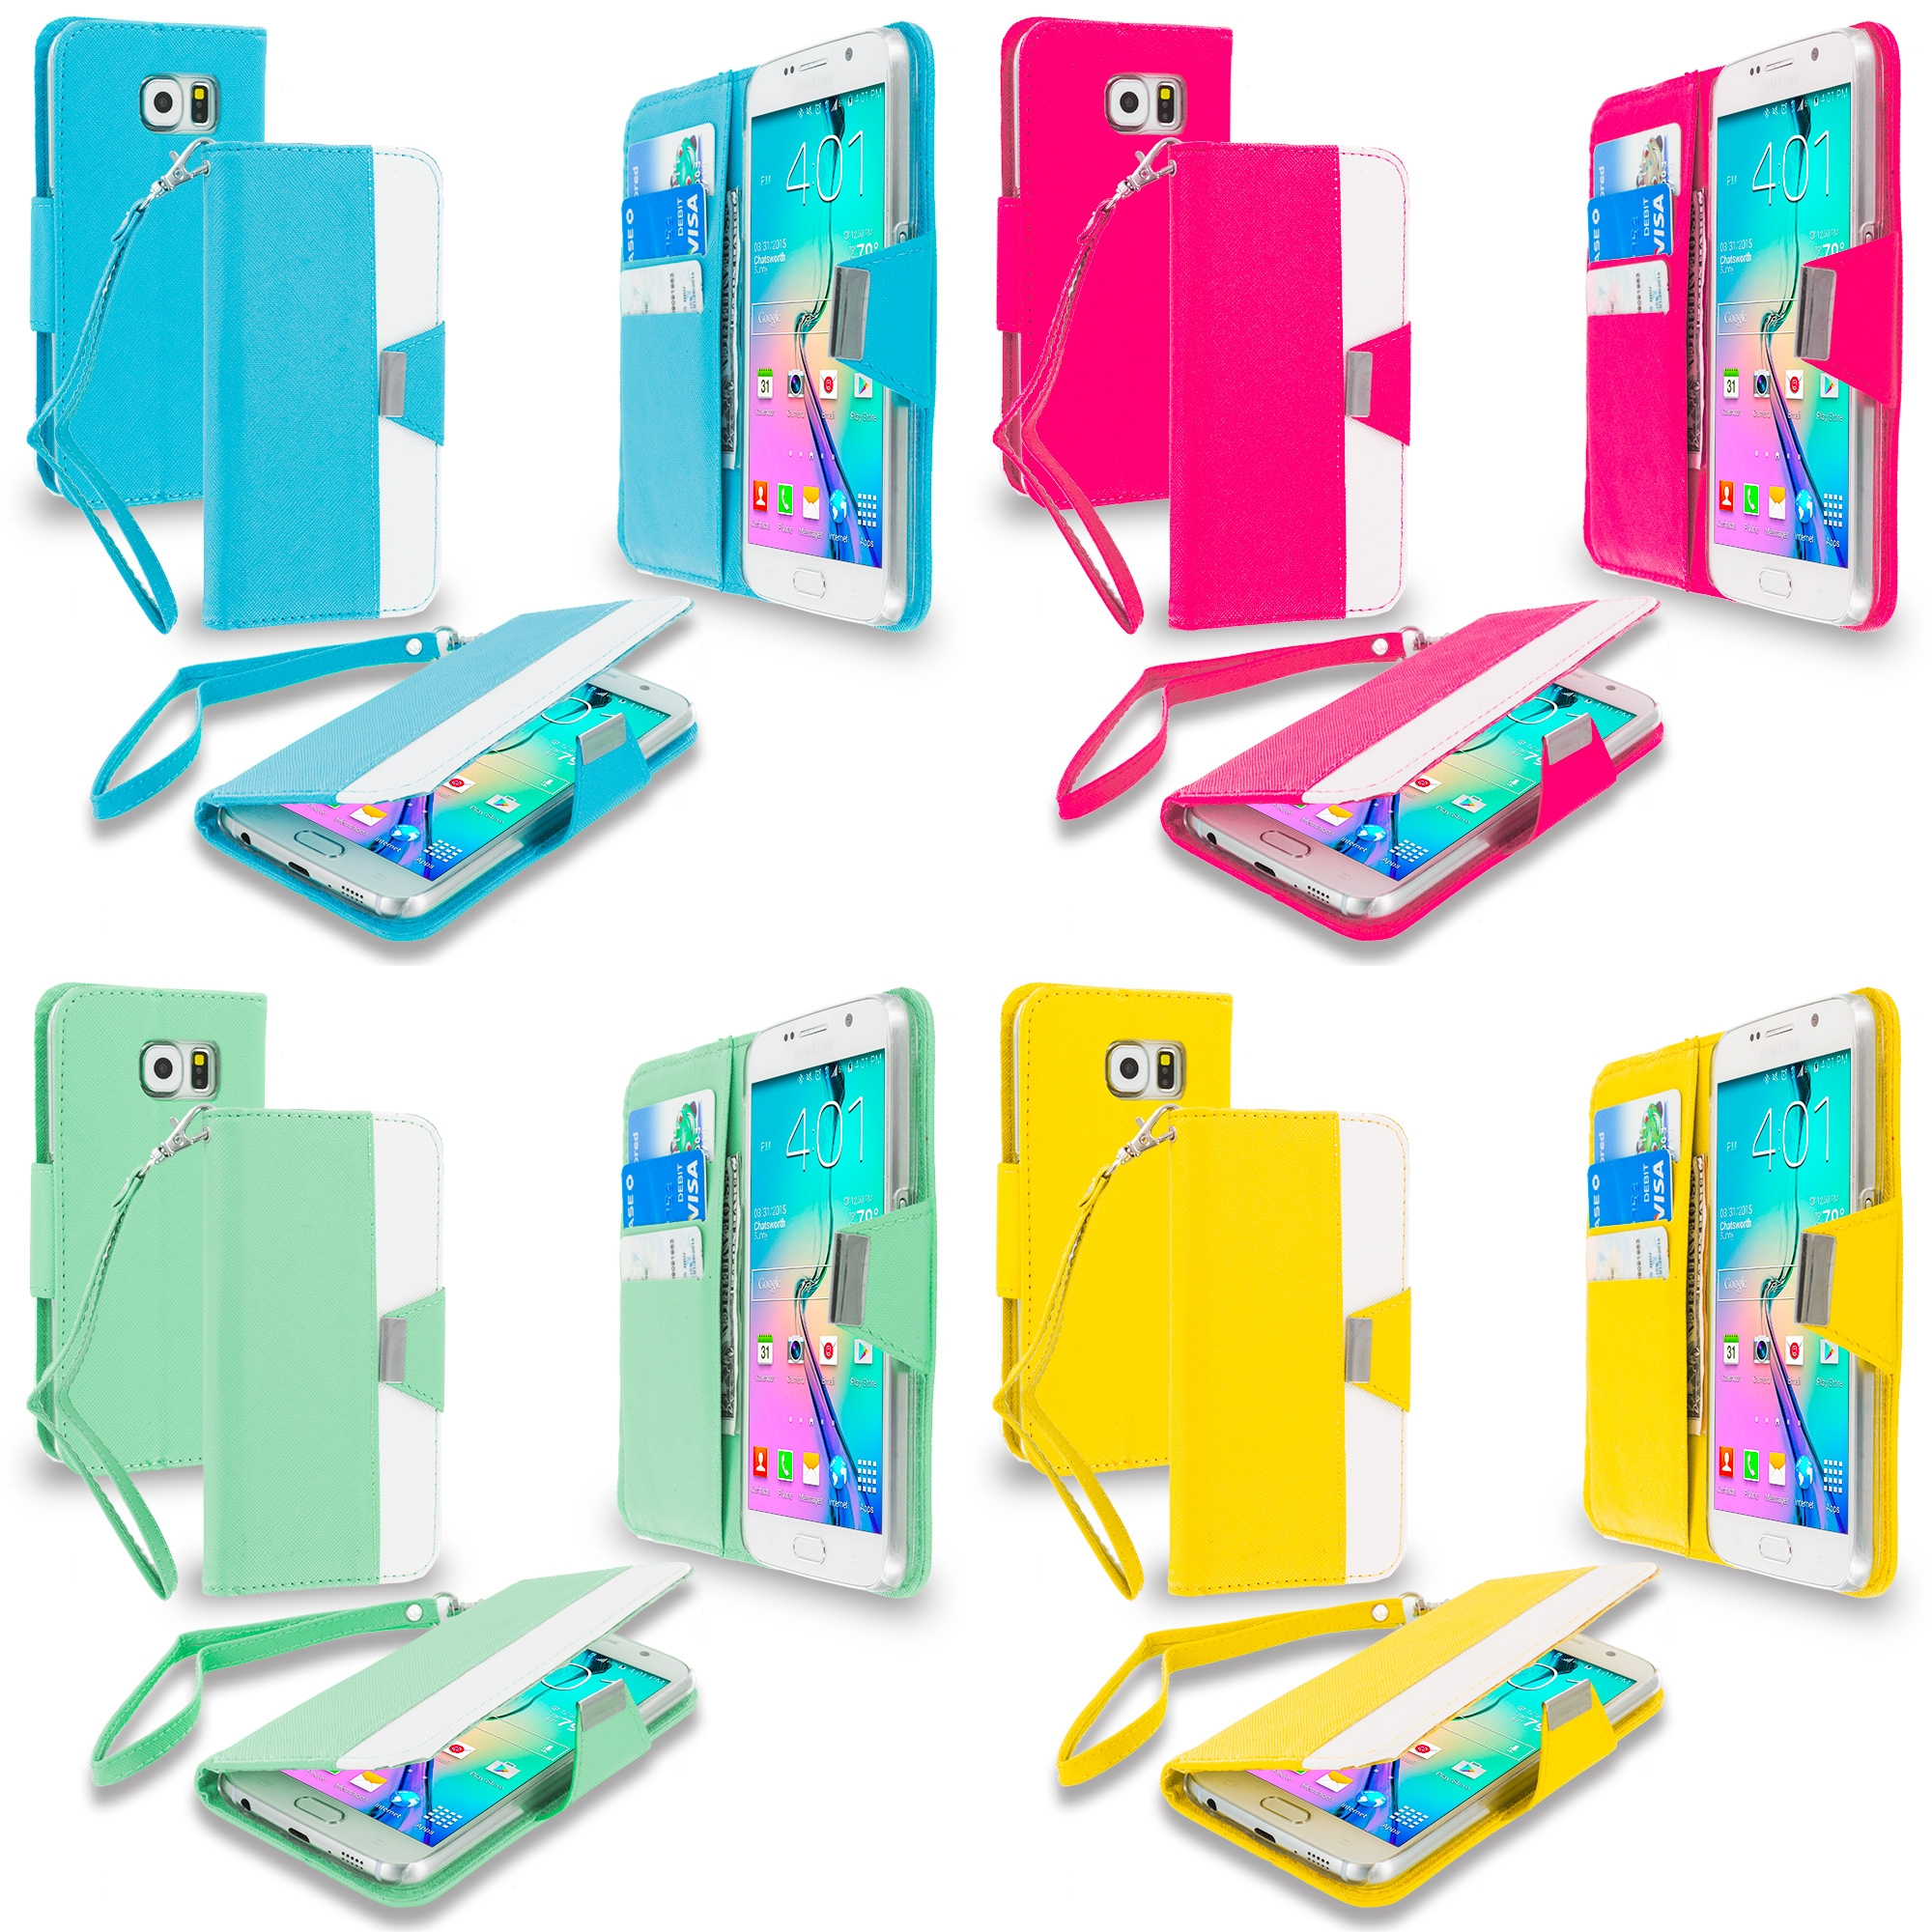 Samsung Galaxy S6 4 in 1 Combo Bundle Pack - Wallet Magnetic Metal Flap Case Cover With Card Slots